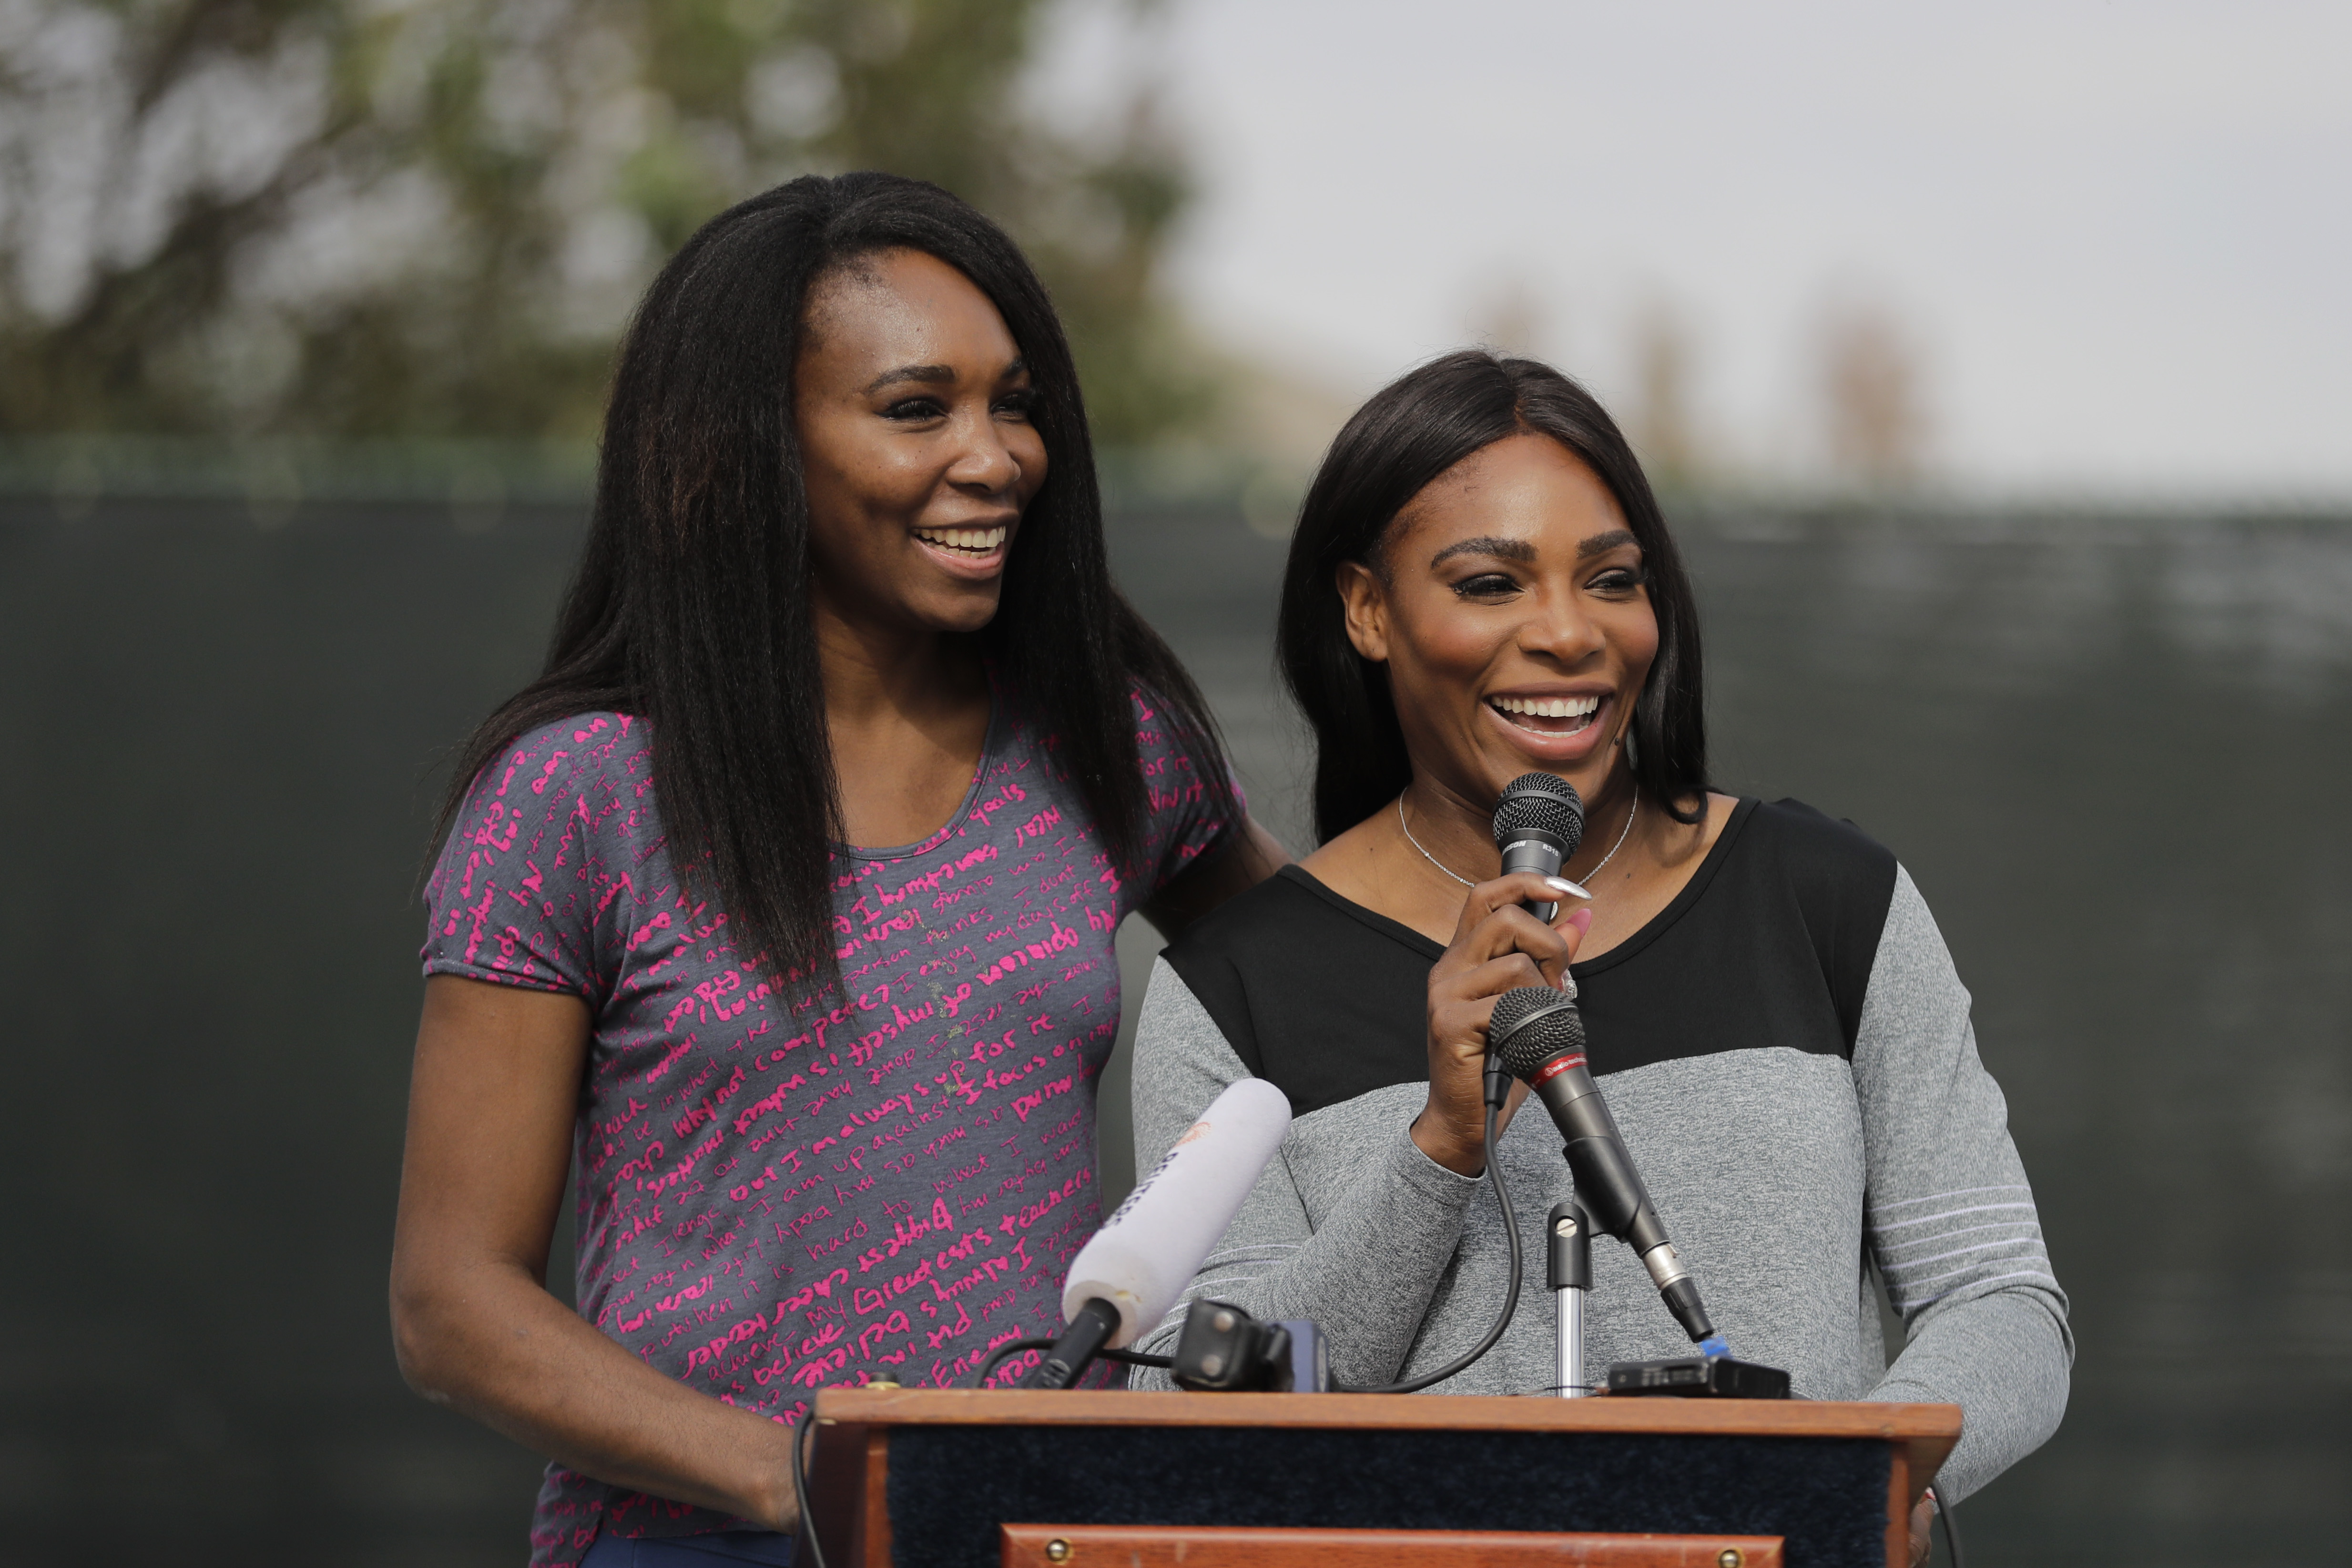 CORRECTS PARK SPELLING TO LUEDERS, NOT LEUDERS - Sister Venus and Serena Williams, right, speak during a dedication ceremony of the Lueders Park tennis courts Saturday, Nov. 12, 2016, in Compton, Calif. The courts were dedicated in their name. (AP Photo/J